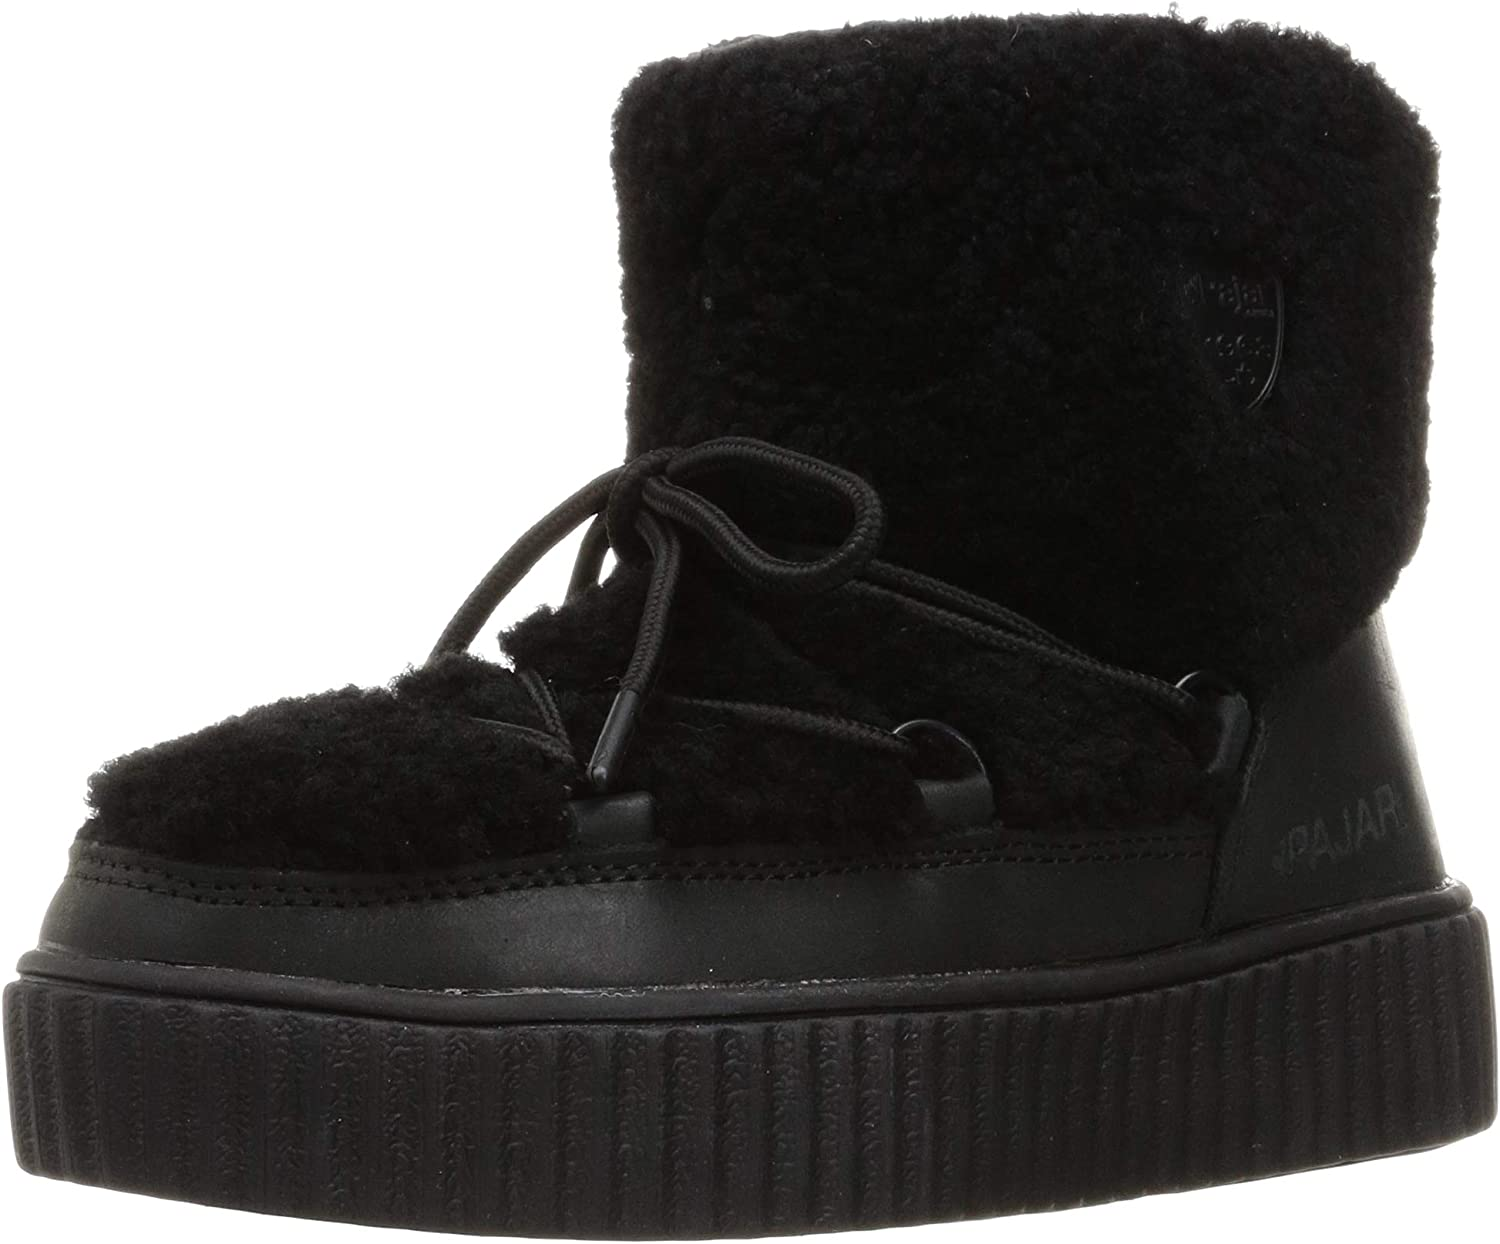 PAJAR Women's Ceria Shearling Waterproof Cold Weather Winter Boots